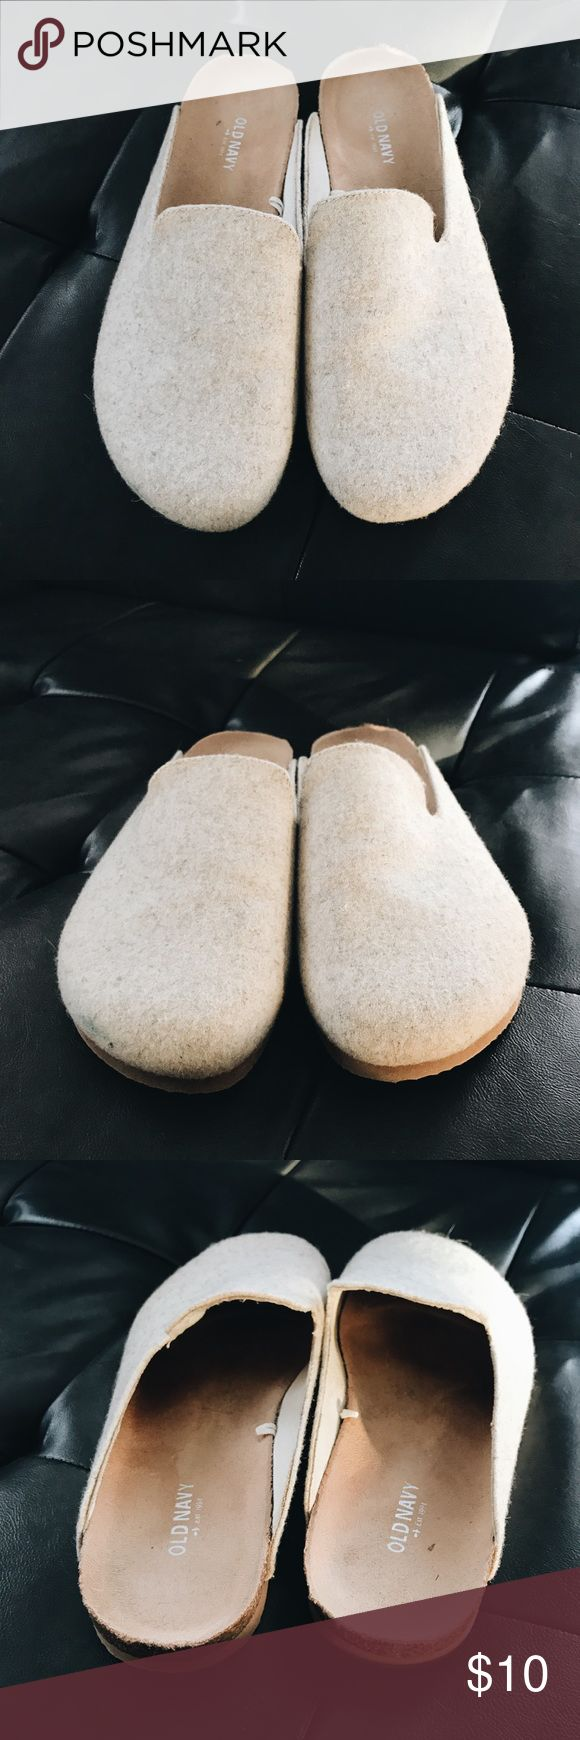 Old Navy House Slippers, Size 10 Hard sole slip on shoes from Old Navy. Worn a couple times, still in great shape. 82% wool on top. Old Navy Shoes Flats & Loafers